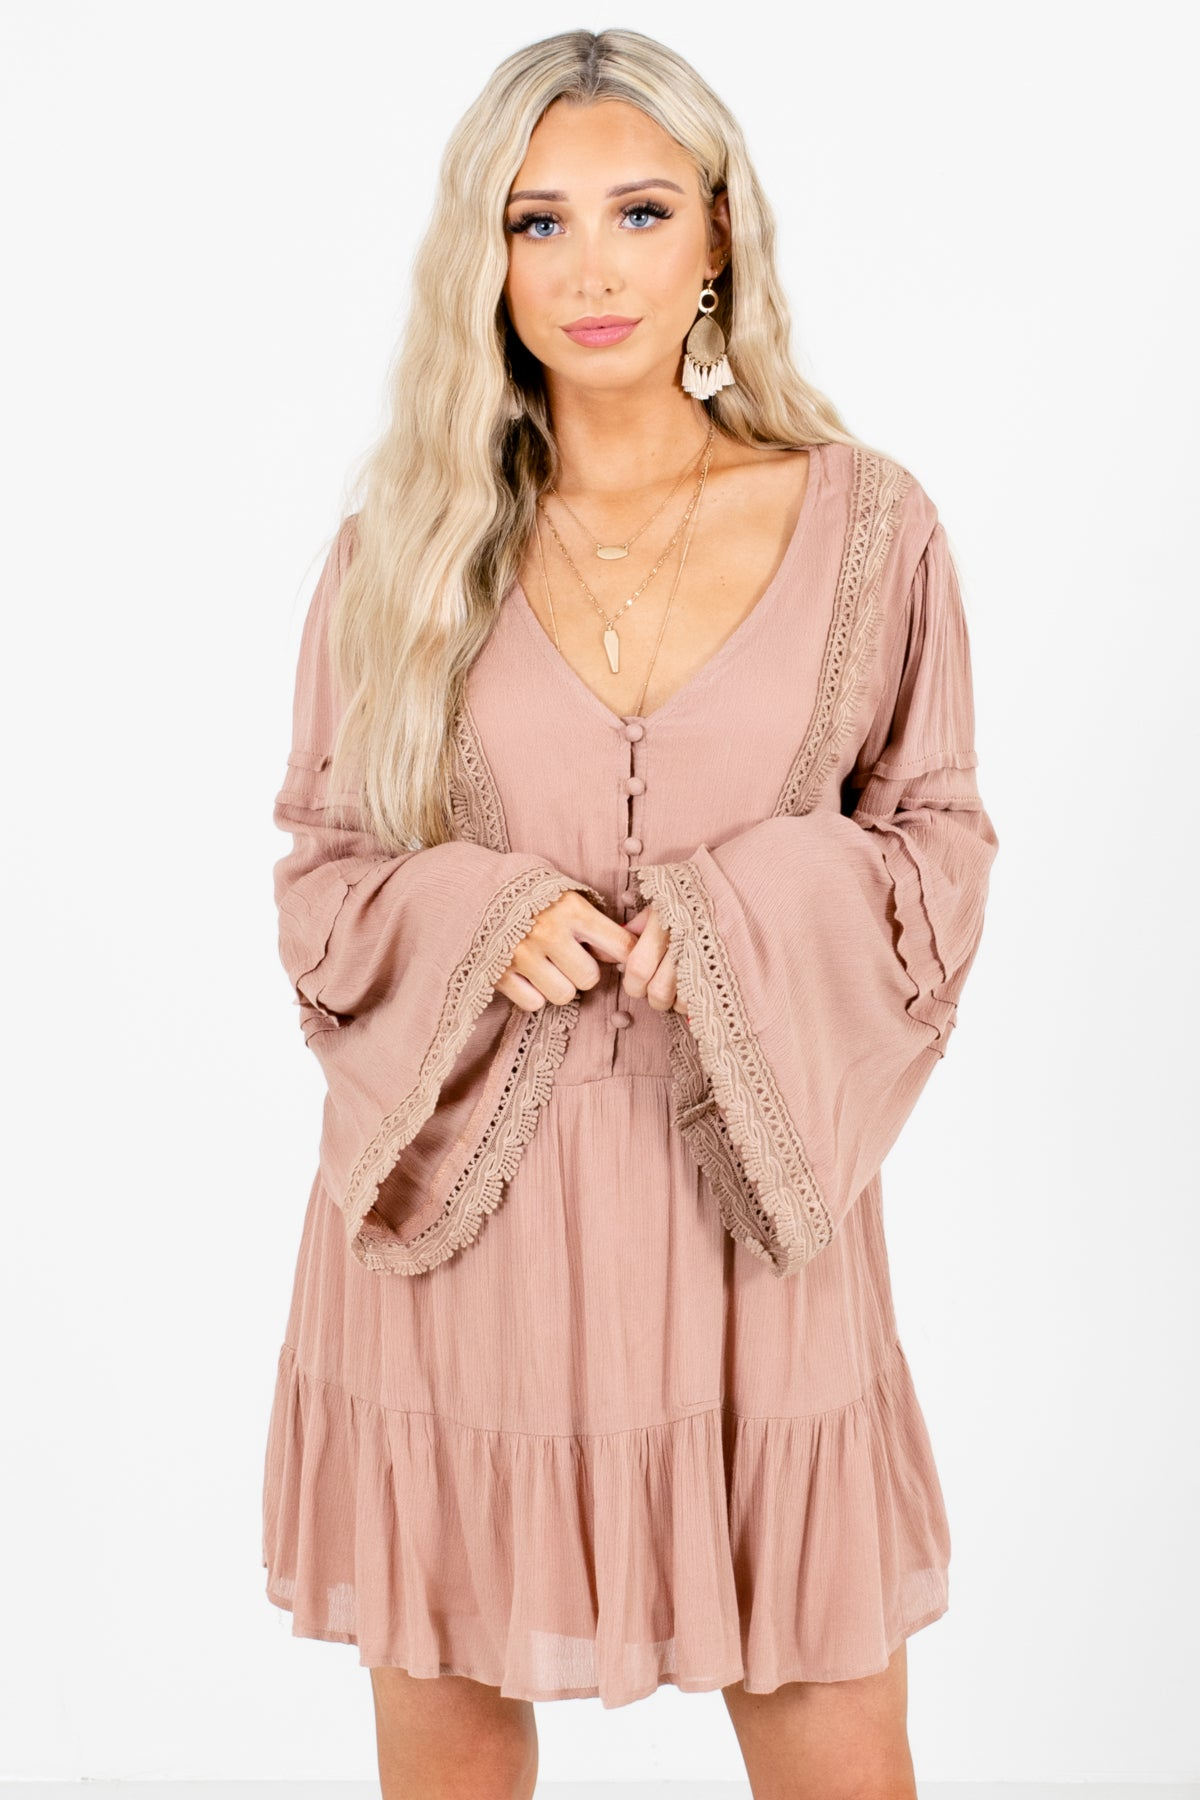 Pink Button-Up Bodice Boutique Mini Dresses for Women